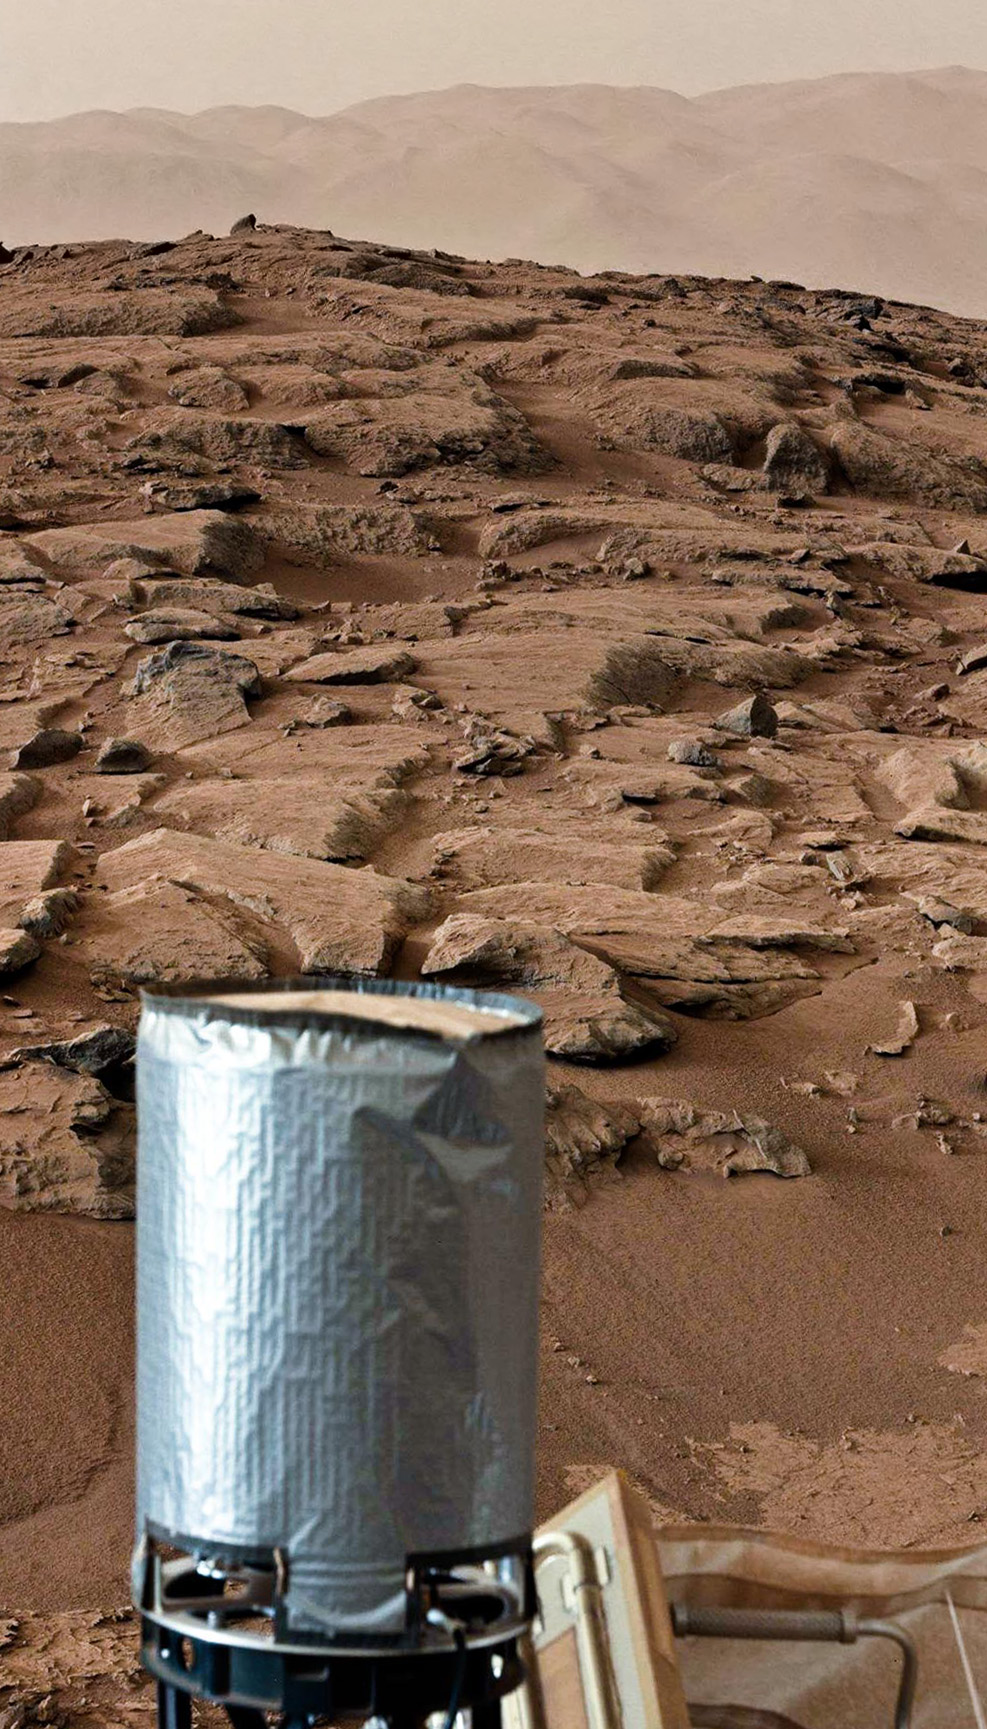 MASTCAM looking north, sol 170